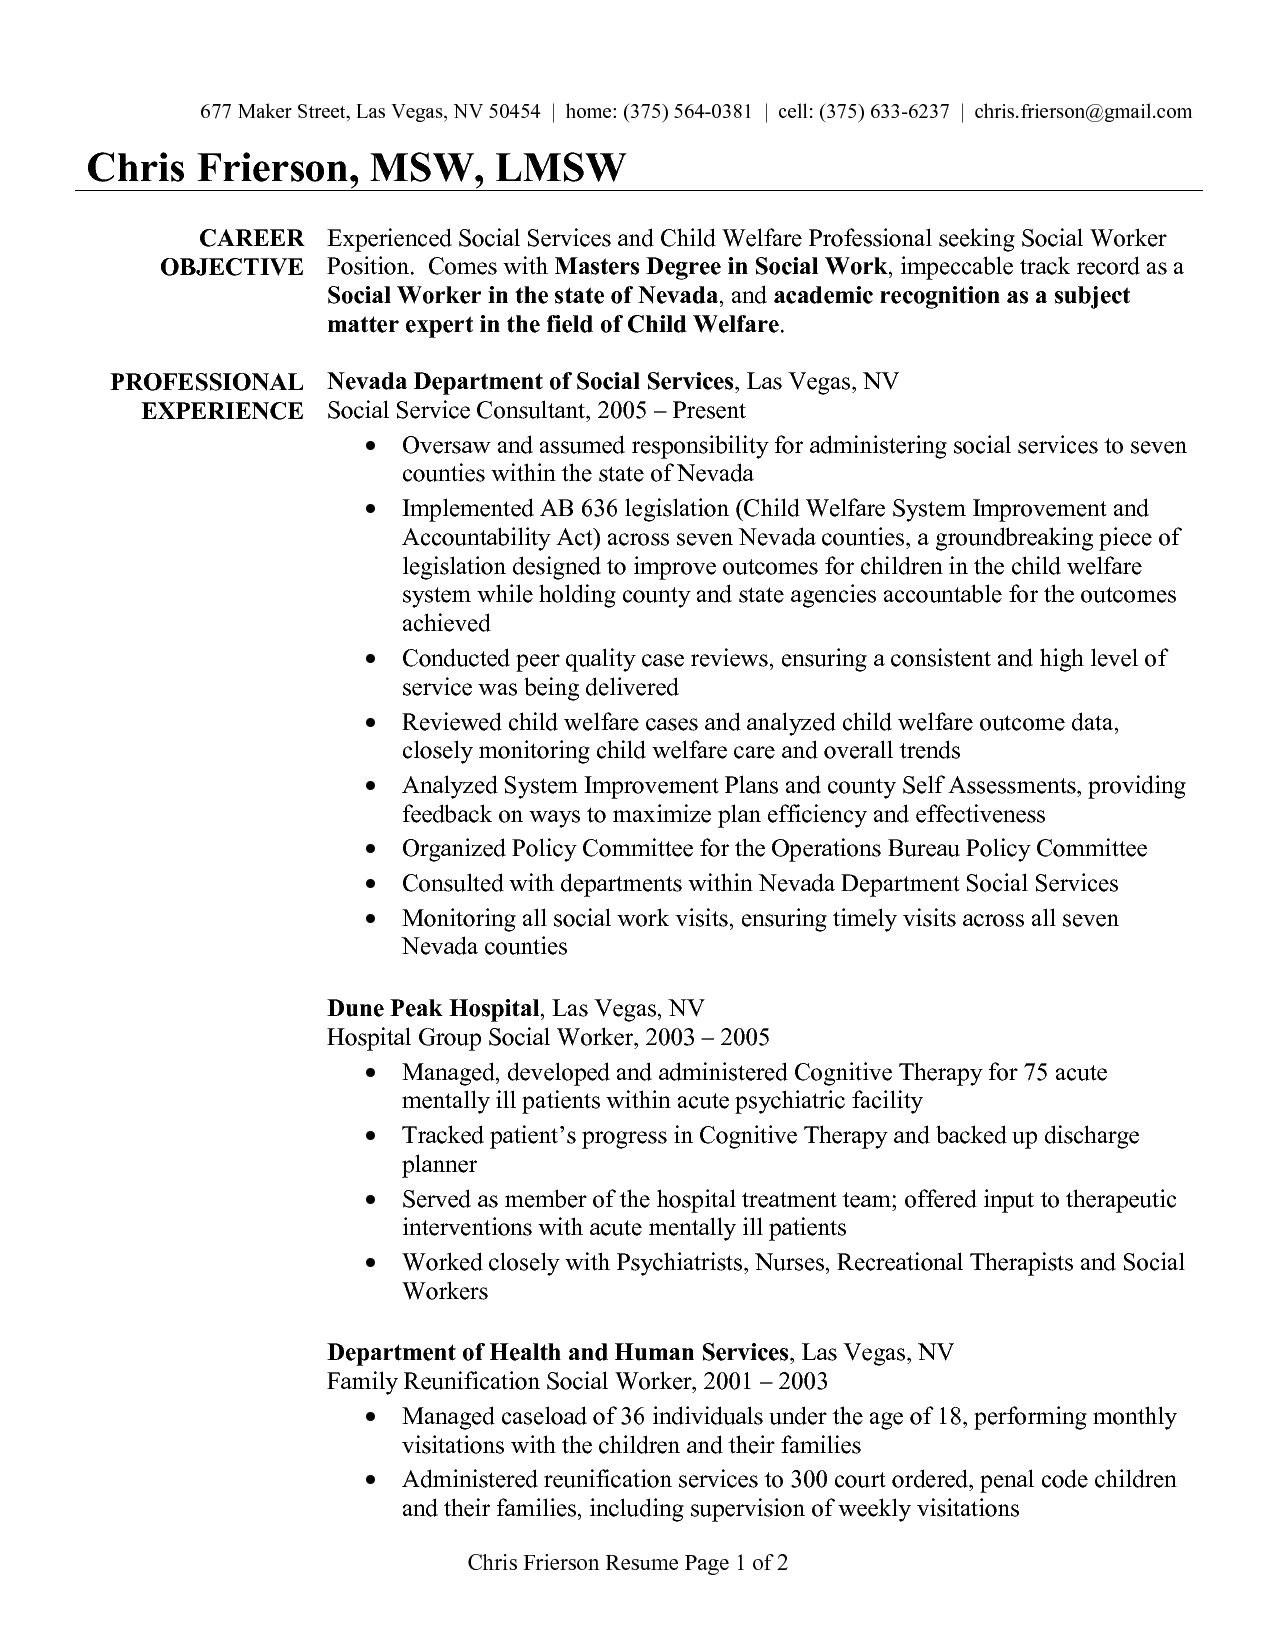 social work resume examples | Social Worker Resume Sample | Social ...